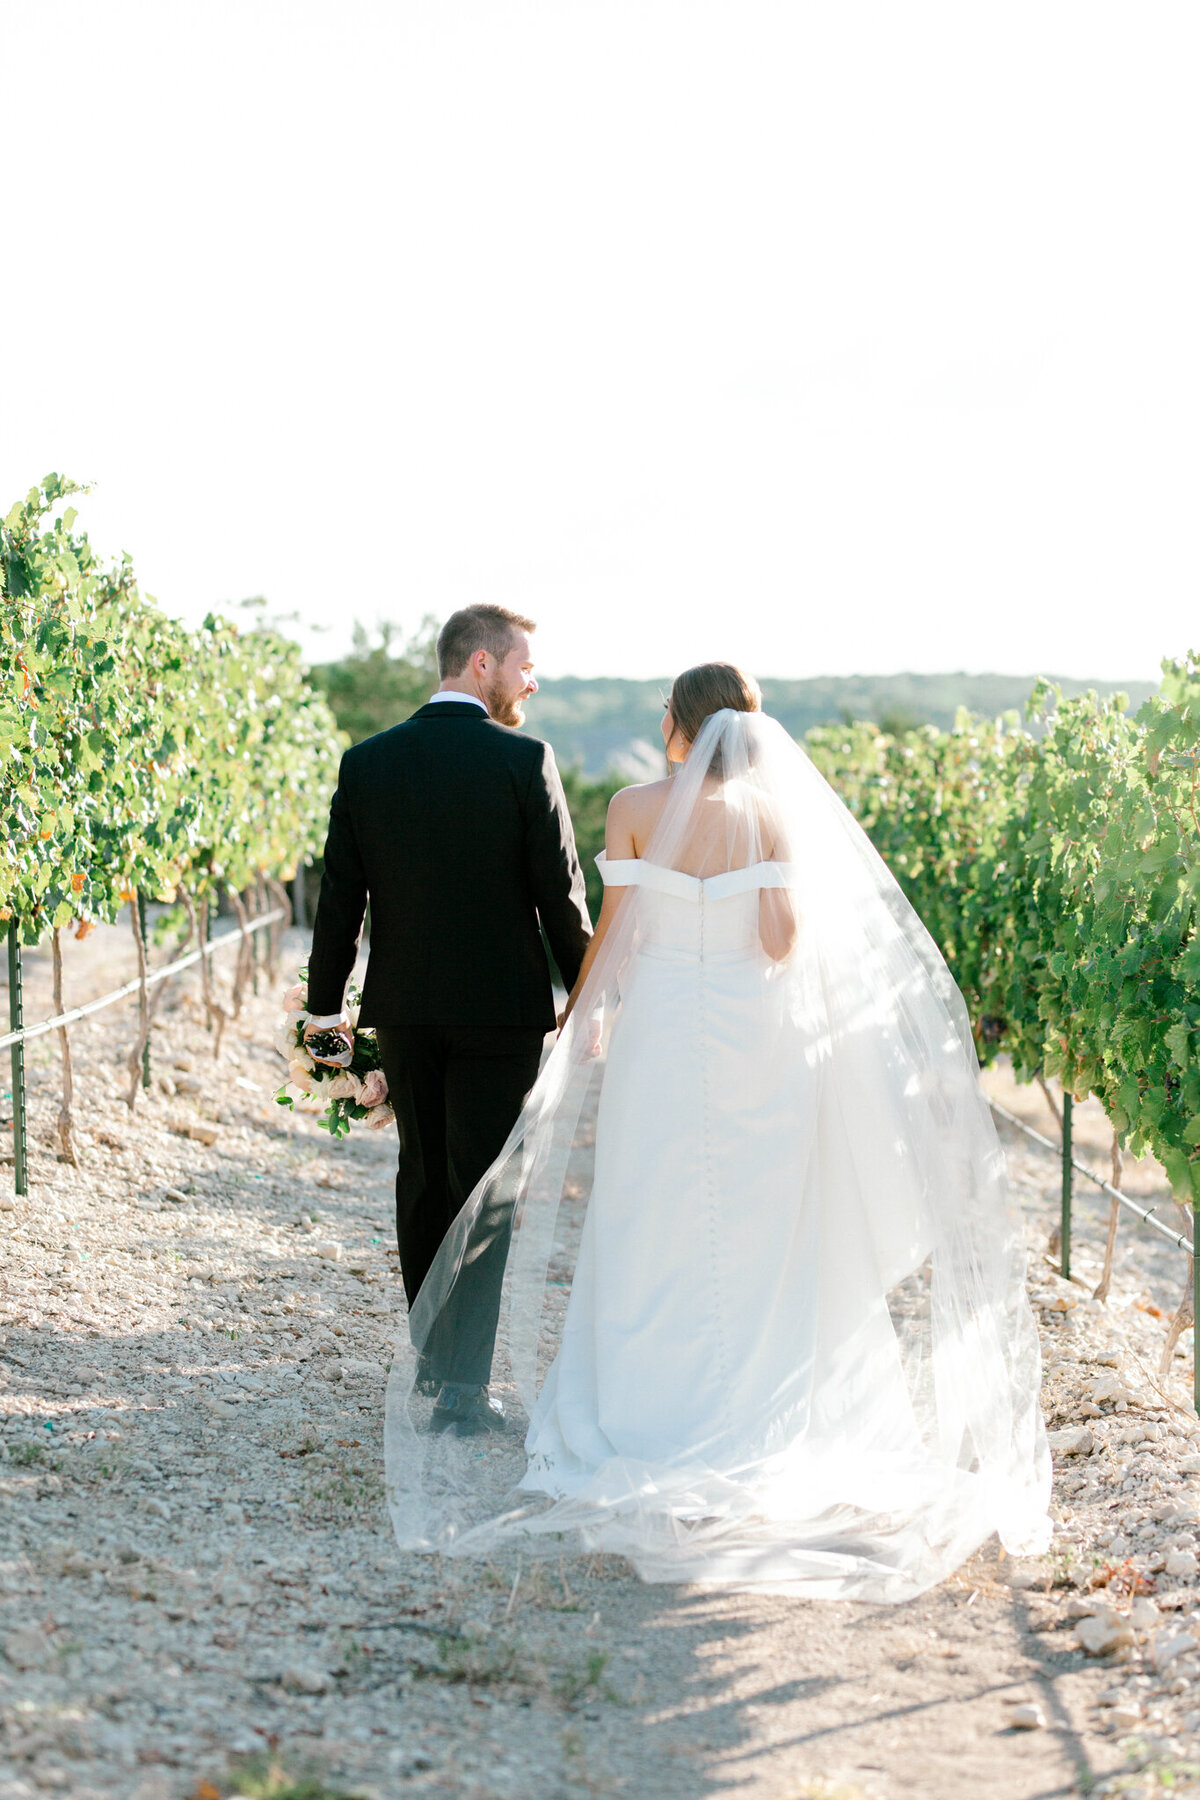 Lexi Broughton & Garrett Greer Wedding at Dove Ridge Vineyards | Sami Kathryn Photography | Dallas Wedding Photography-136